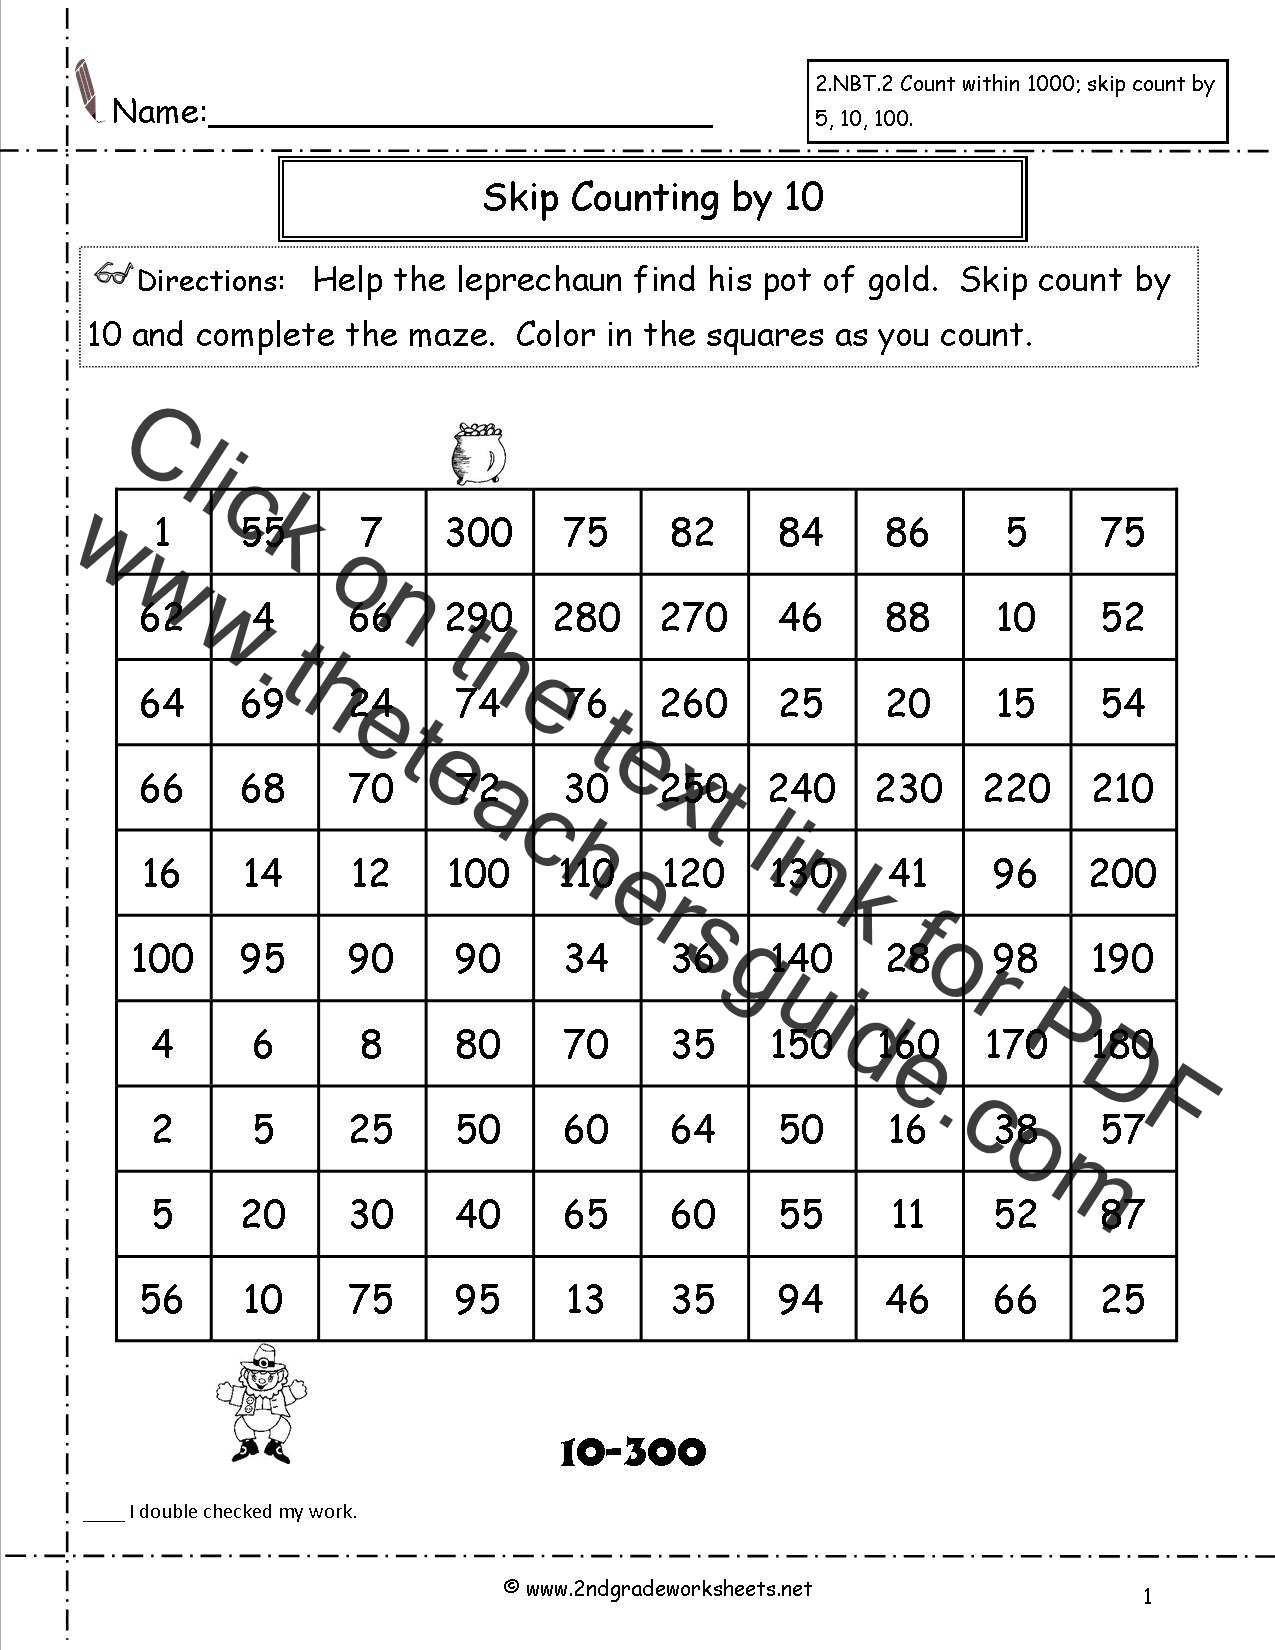 Worksheets Counting By 10 Worksheet free skip counting worksheets count by 10 maze